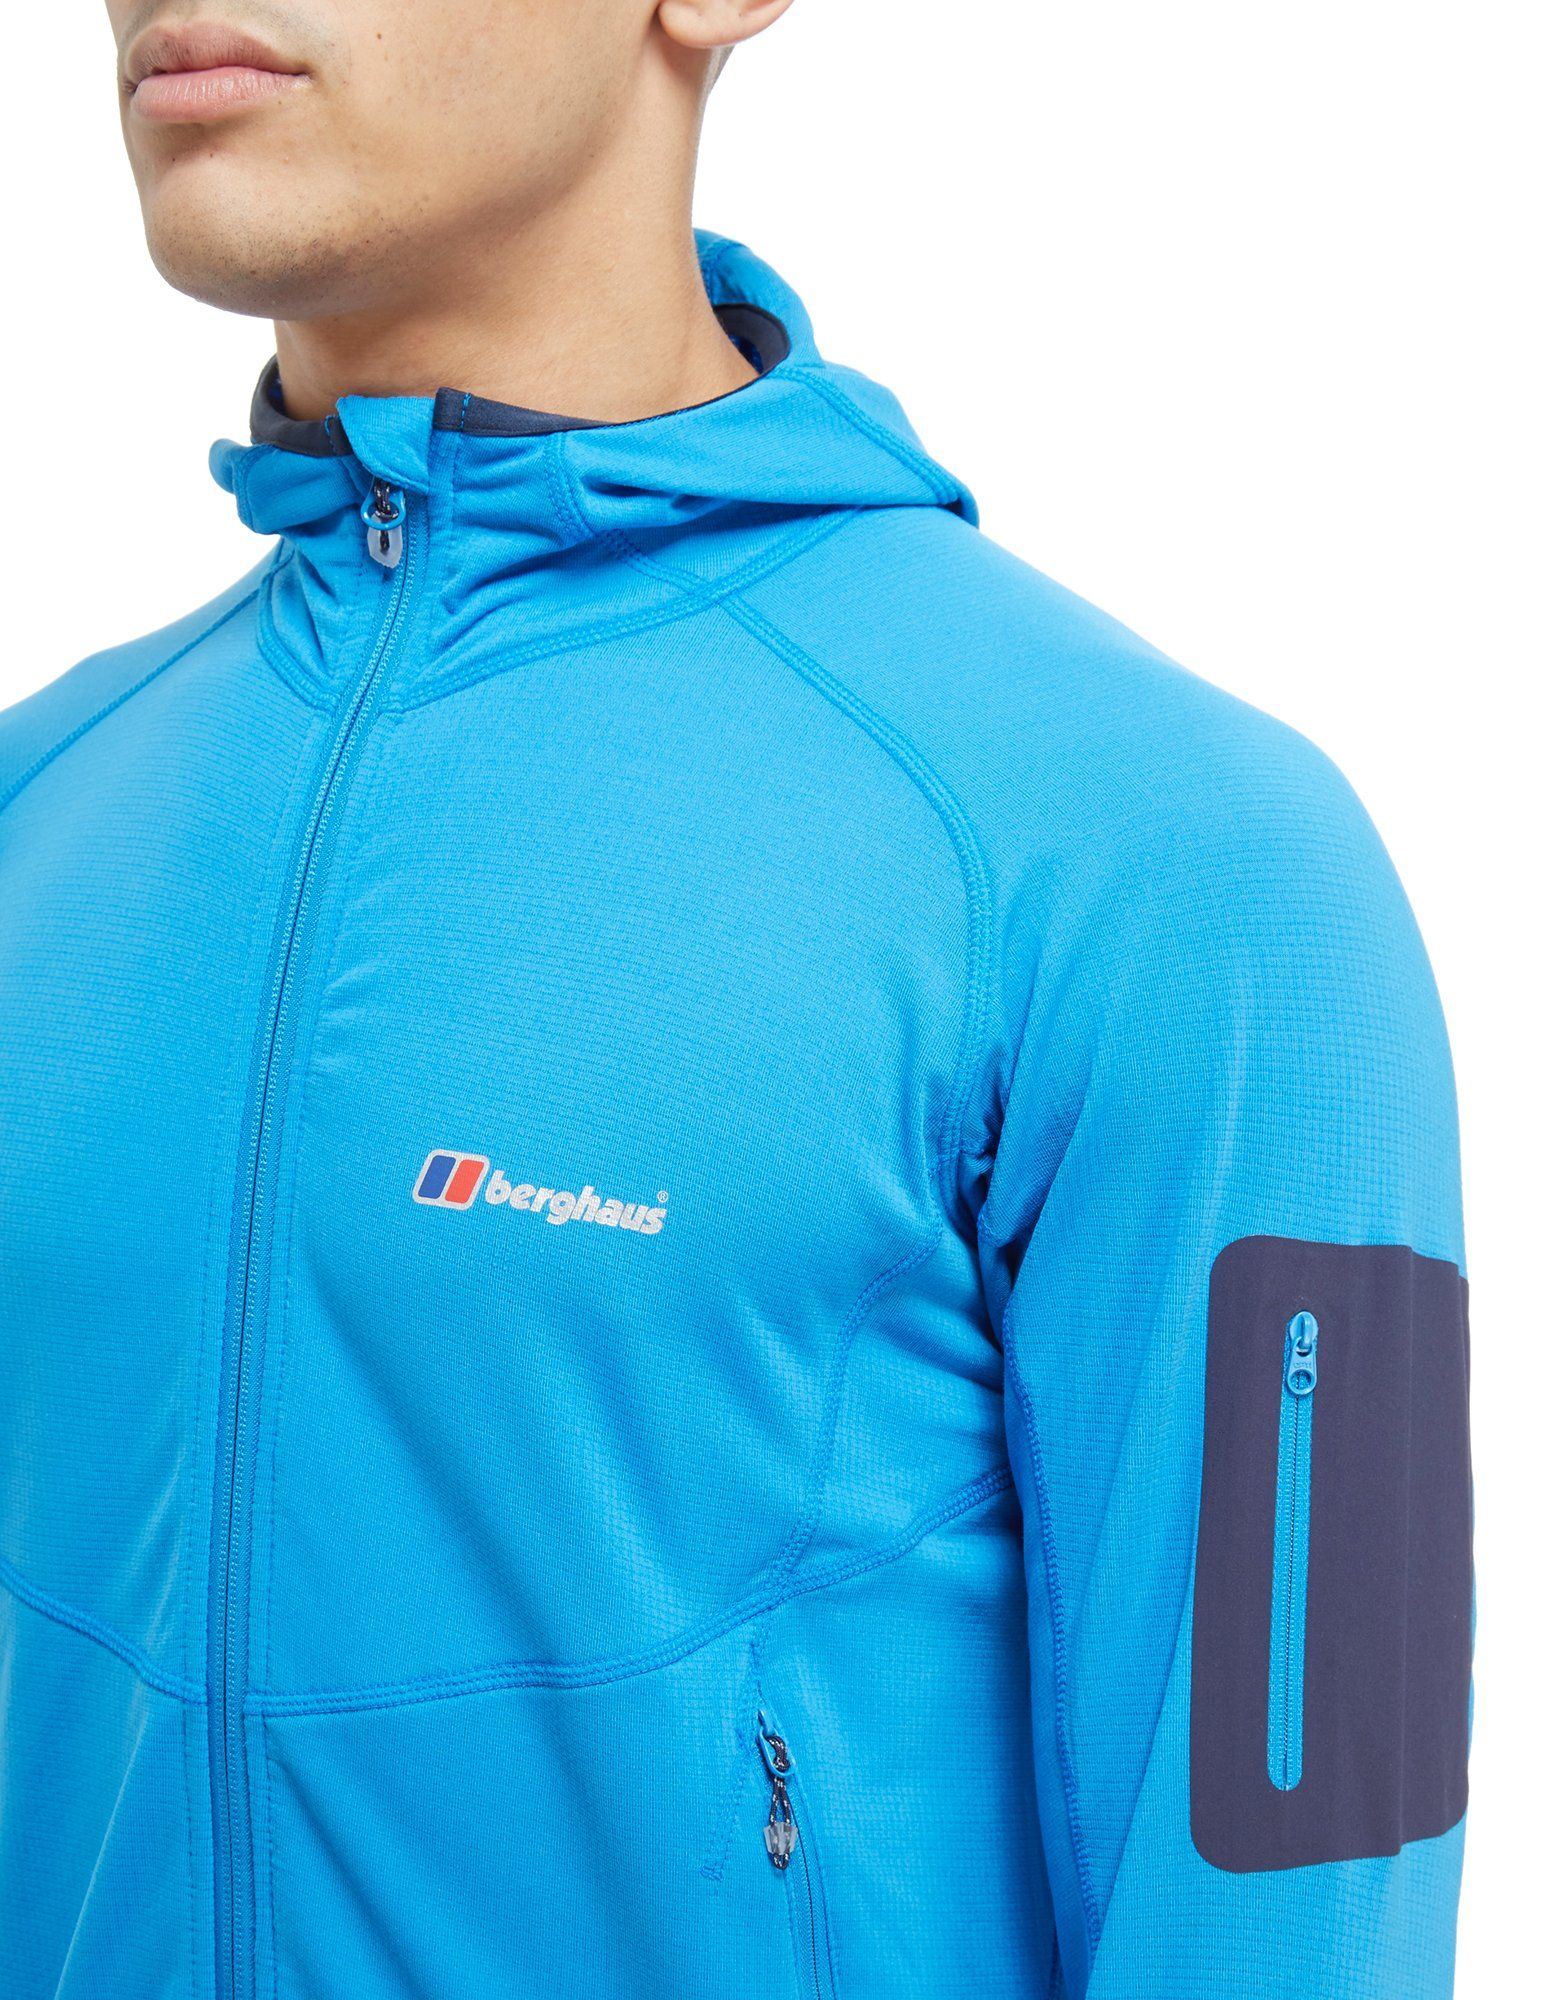 Berghaus Pravitale Lightweight Full Zip Jacket Blau